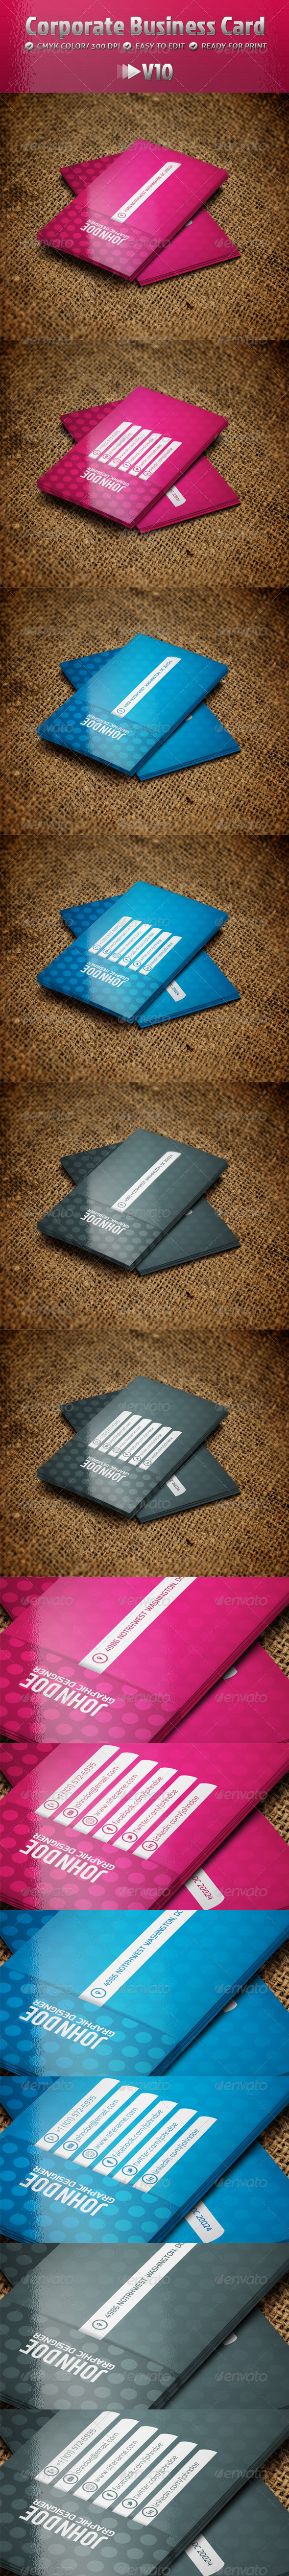 GraphicRiver Corporate Business Card V10 4853481